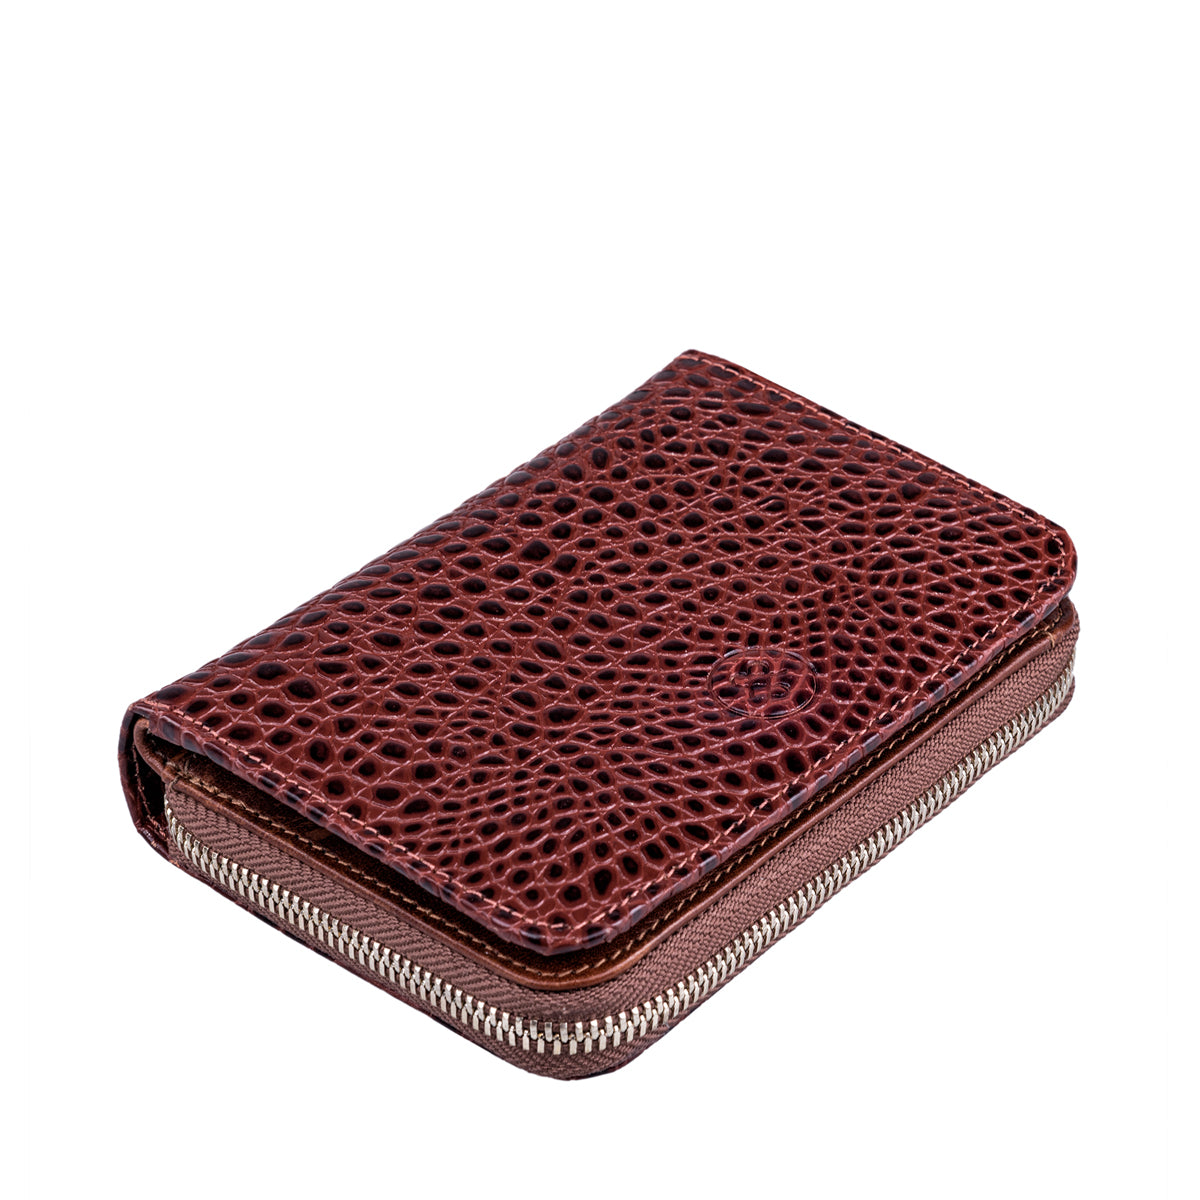 Image 5 of the 'Forino' Chestnut Mock Croc Veg Tanned Leather Purse